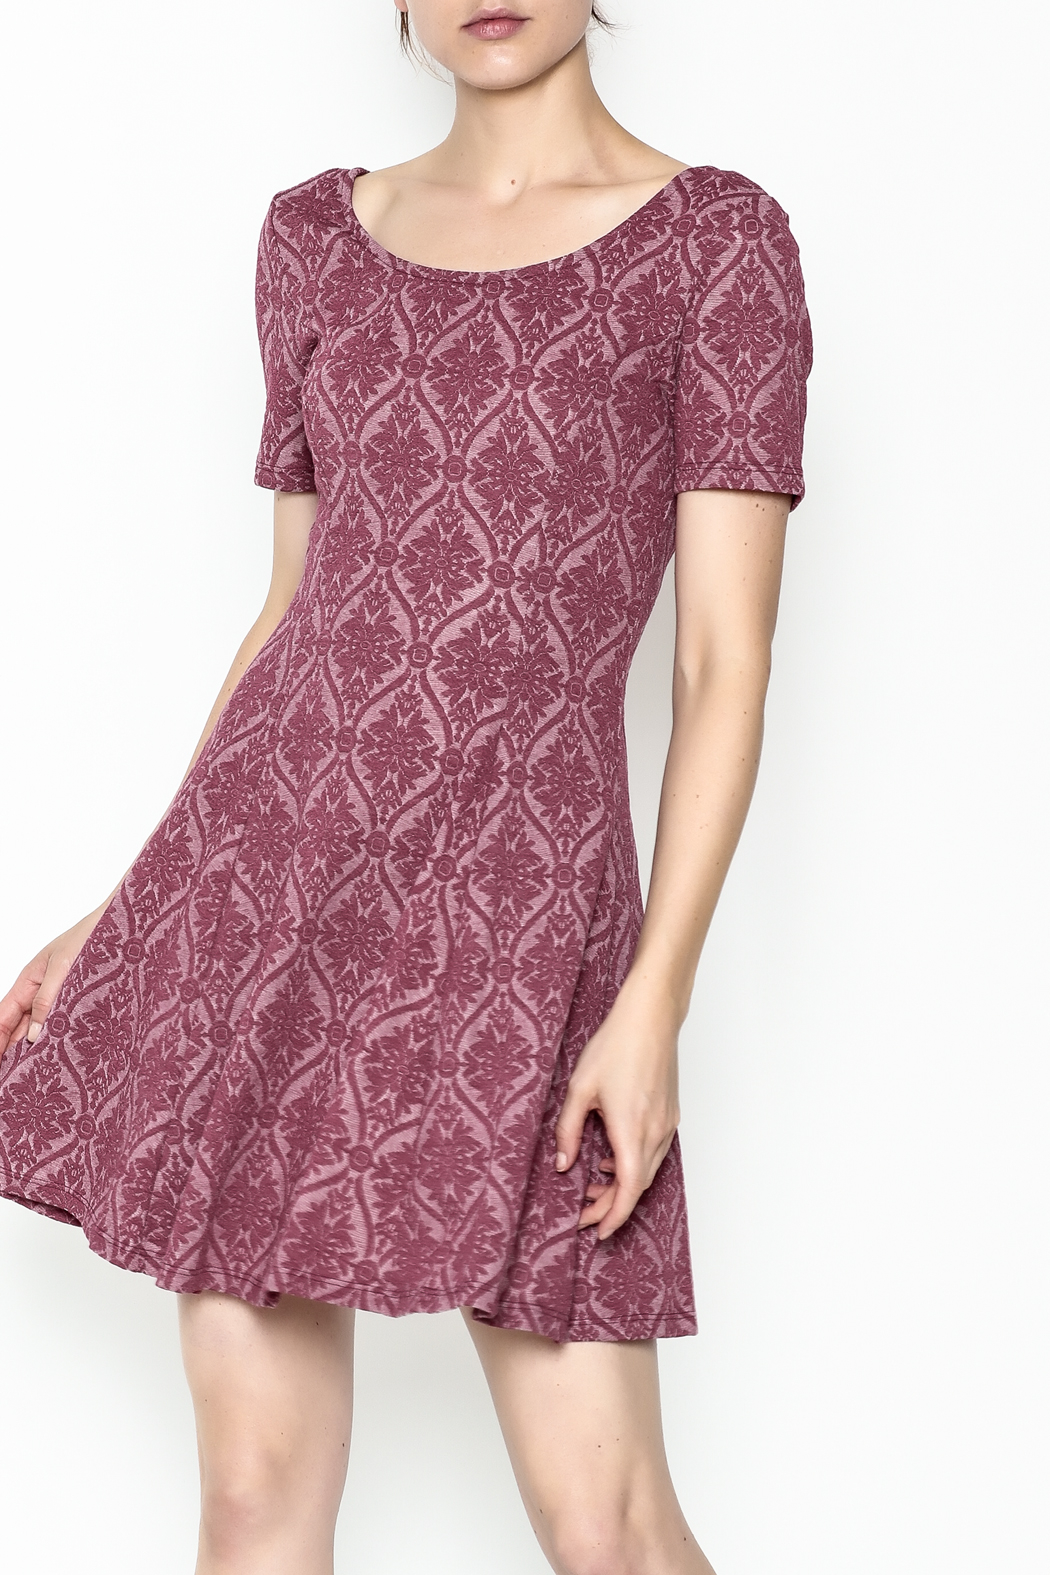 Everly Patterned Deep Pink Dress - Main Image